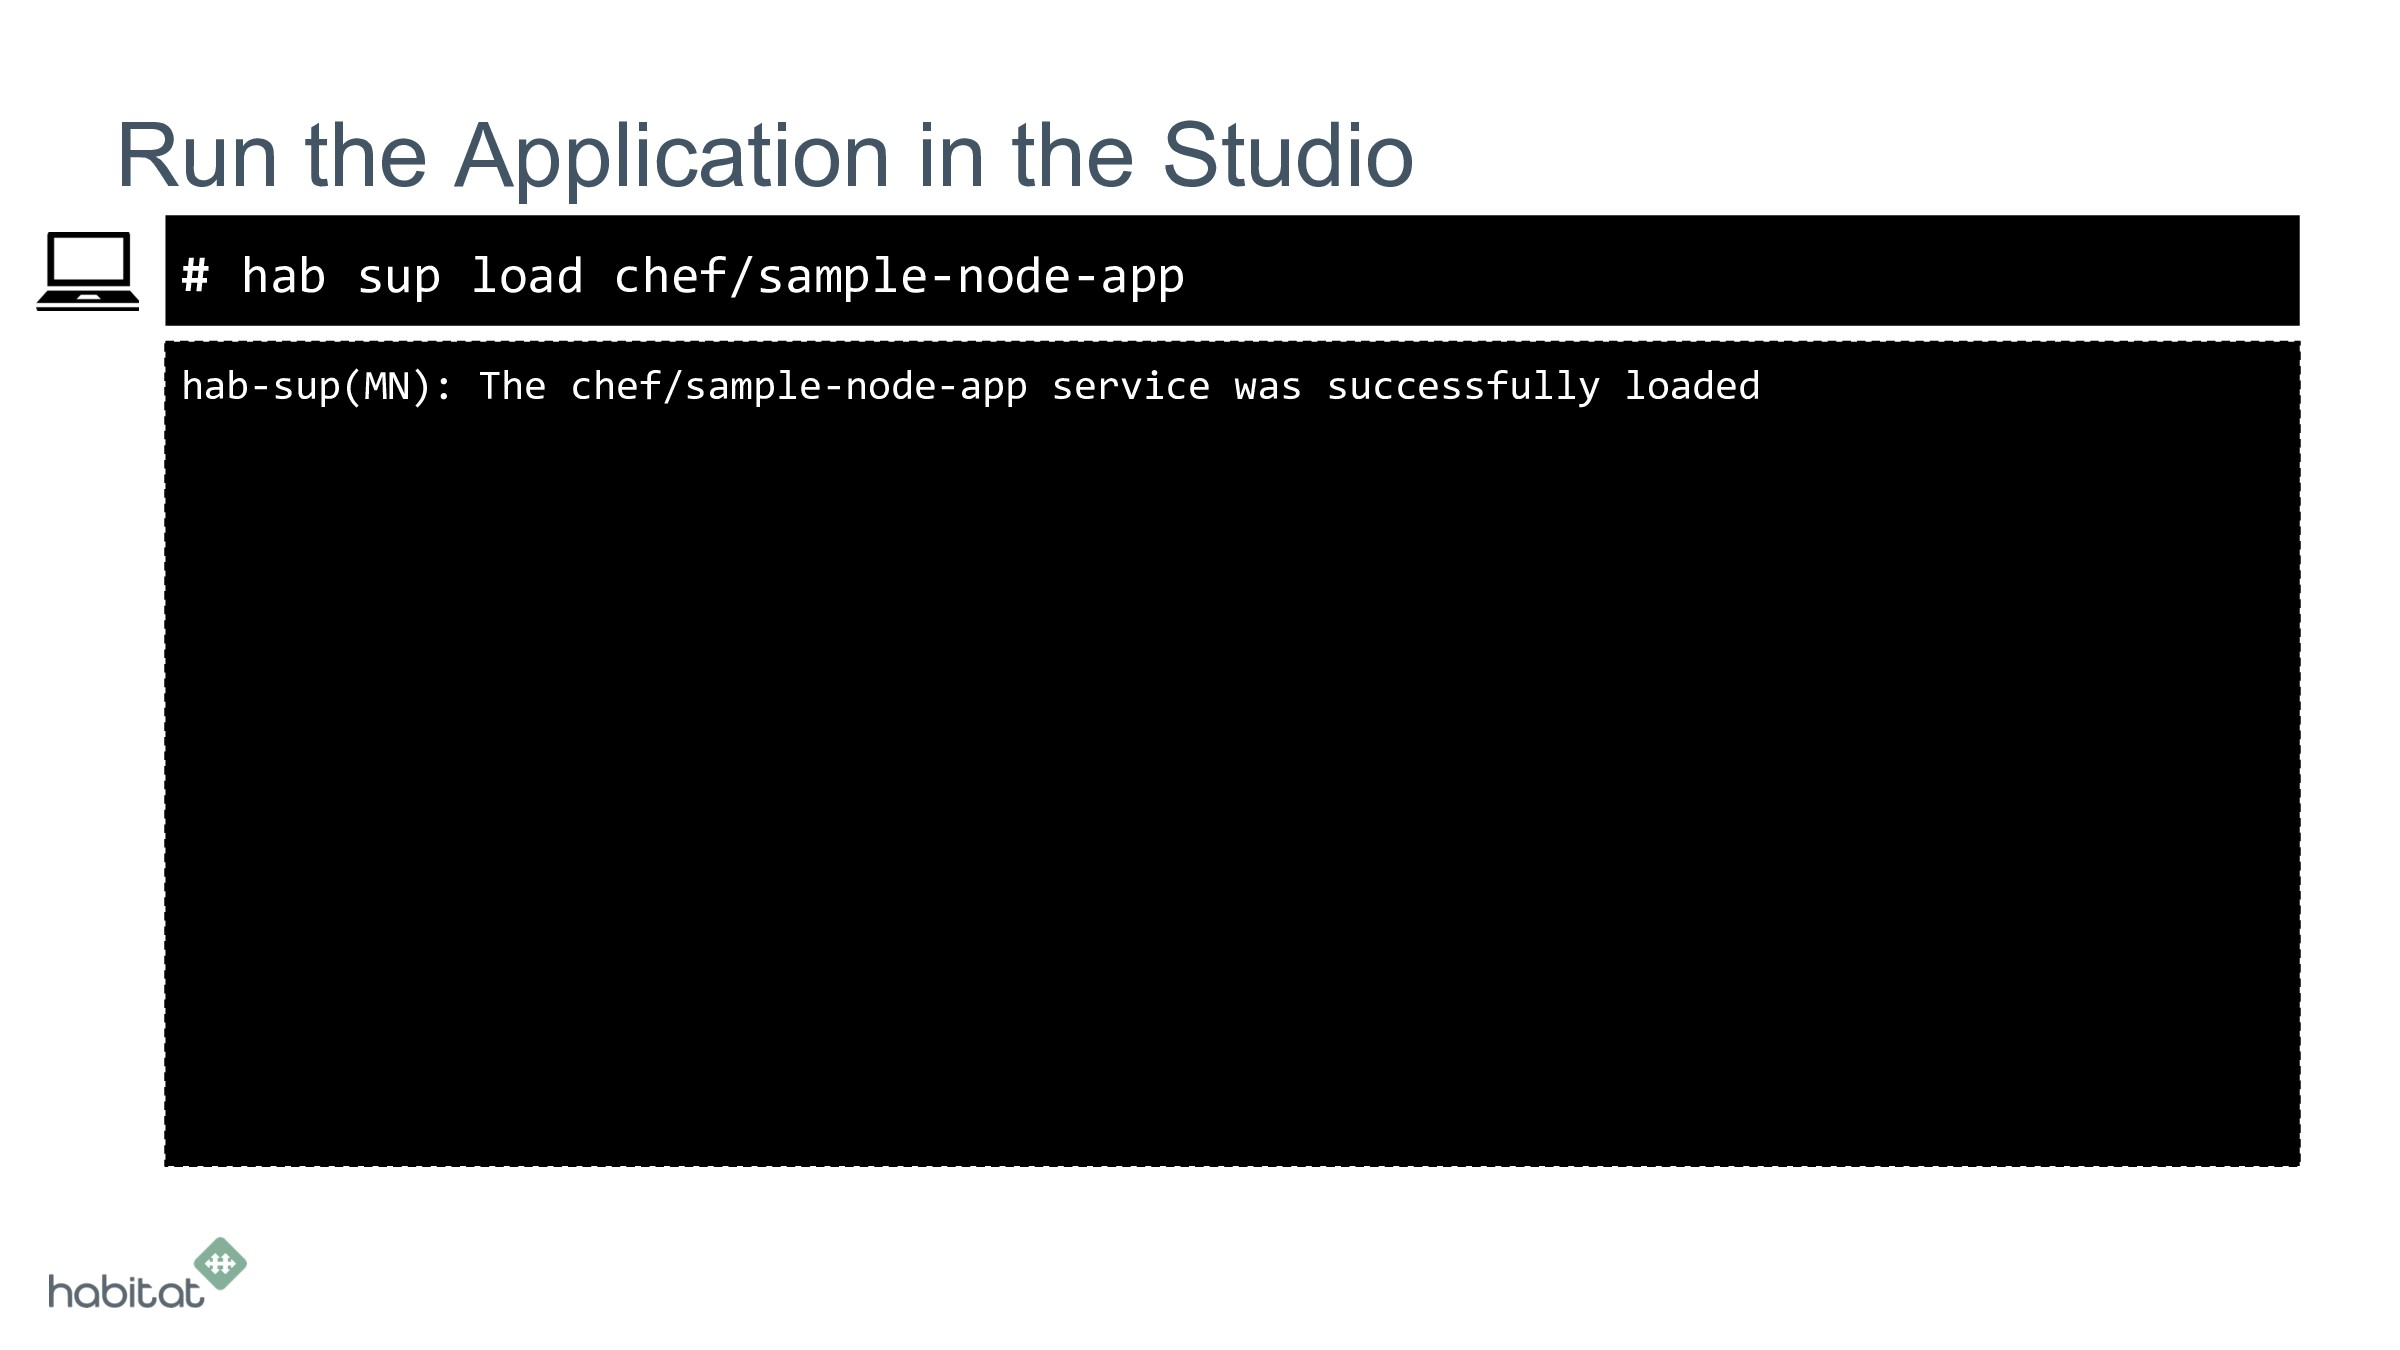 # hab-sup(MN): The chef/sample-node-app service...